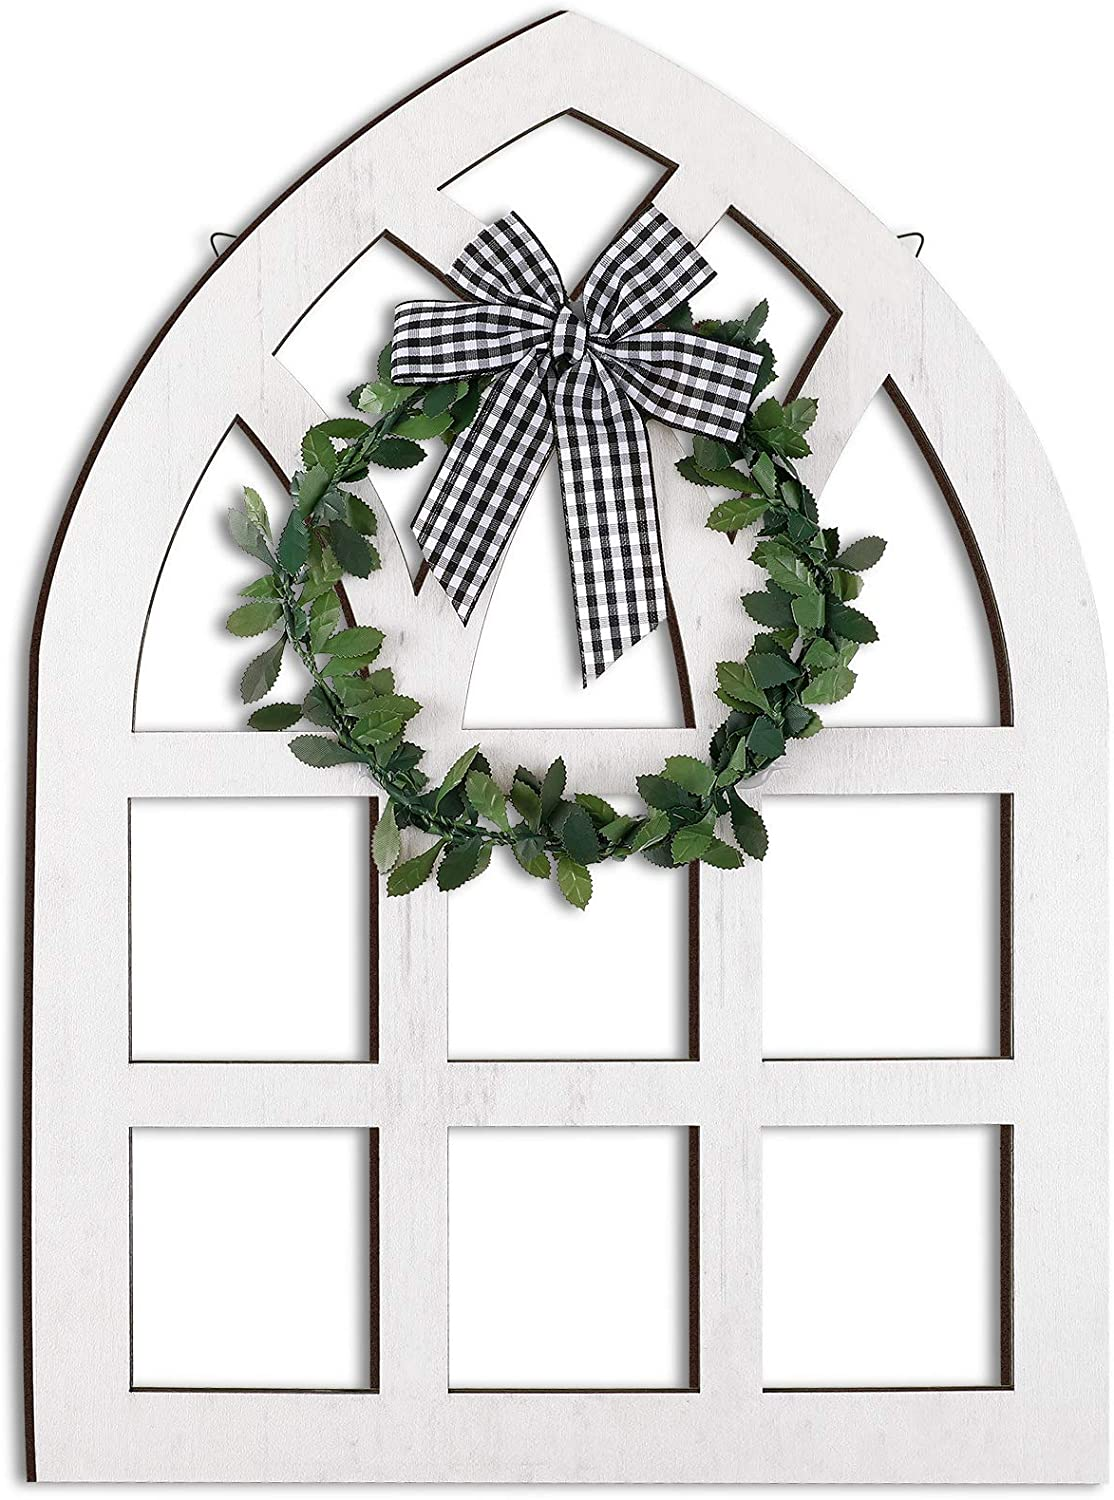 Large Wooden Farmhouse Window Wall Decoration Rustic Farmhouse Decor Cathedral Arch Window Sign with Plaid Bow and Green Wreath for Tiered Tray Shelf Spring Home Wall Decor (White)